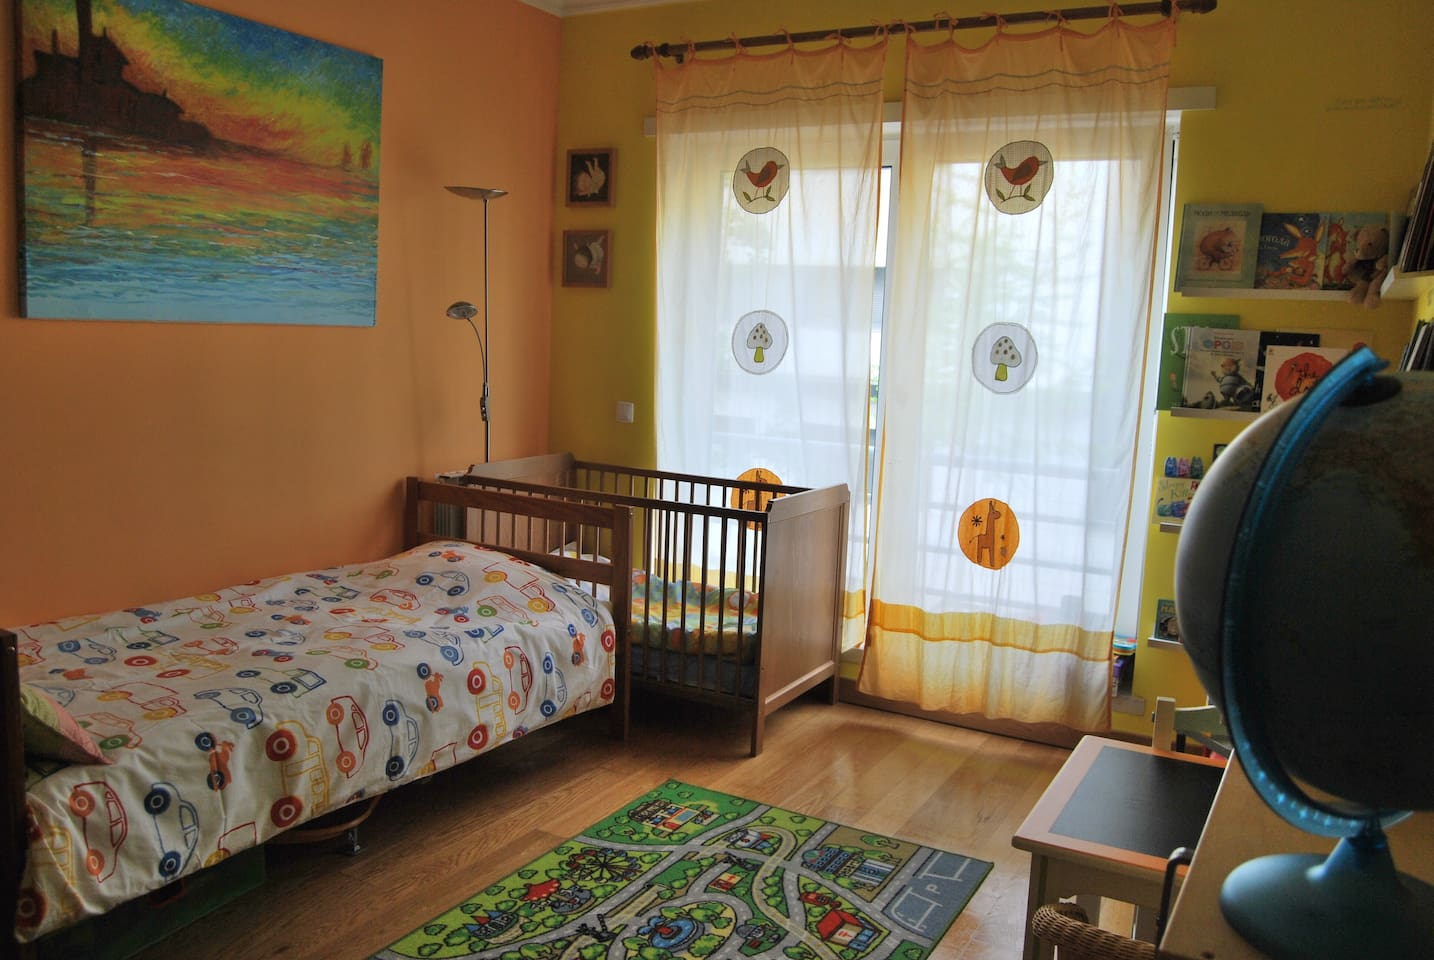 Children's room has a baby/toddler bed and a single bed for an older child or an adult.